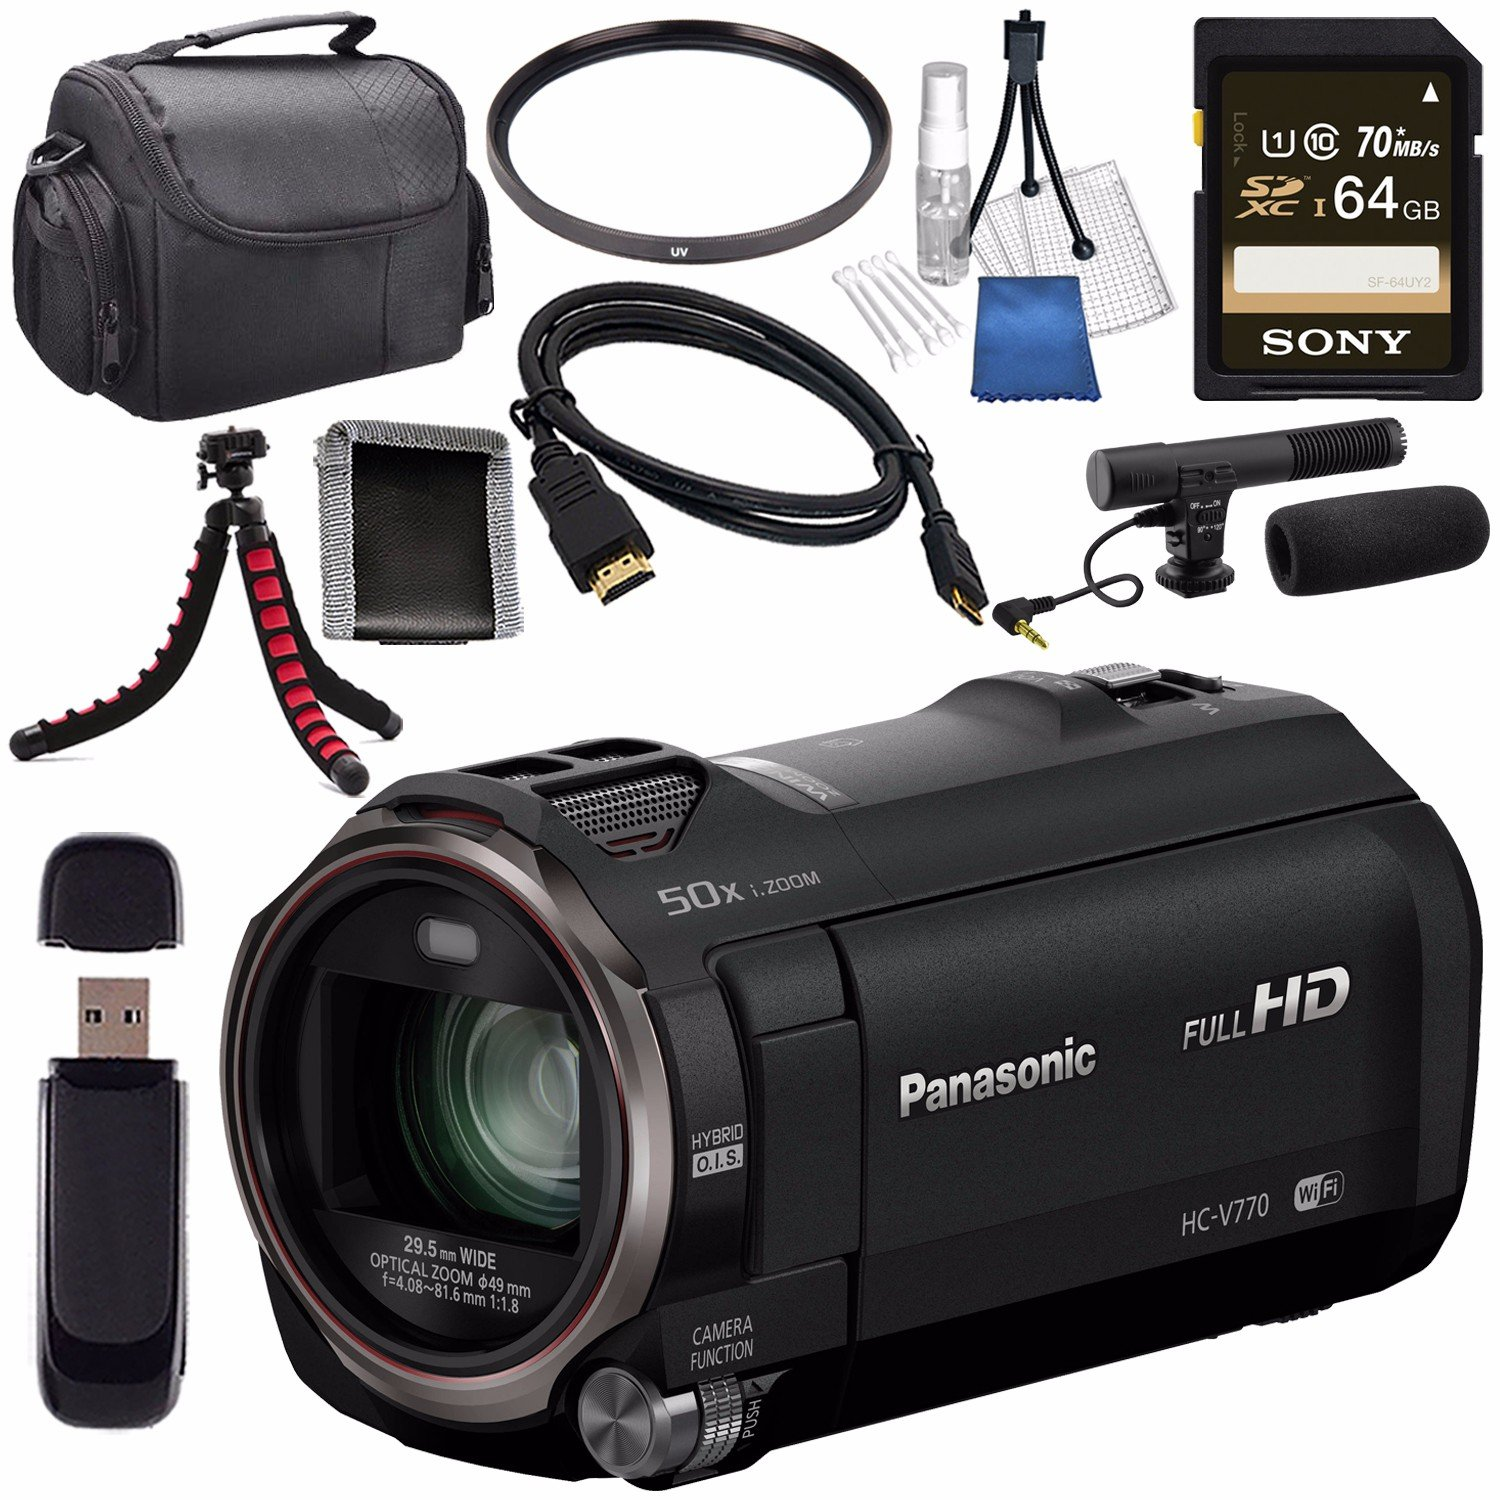 Panasonic HC-V770 HC-V770K Full HD Camcorder + Sony 64GB SDXC Card + 49mm UV Filter + Flexible Tripod + Carrying Case + Memory Card Wallet + Card Reader + Mini HDMI Cable + Condenser Mic Bundle